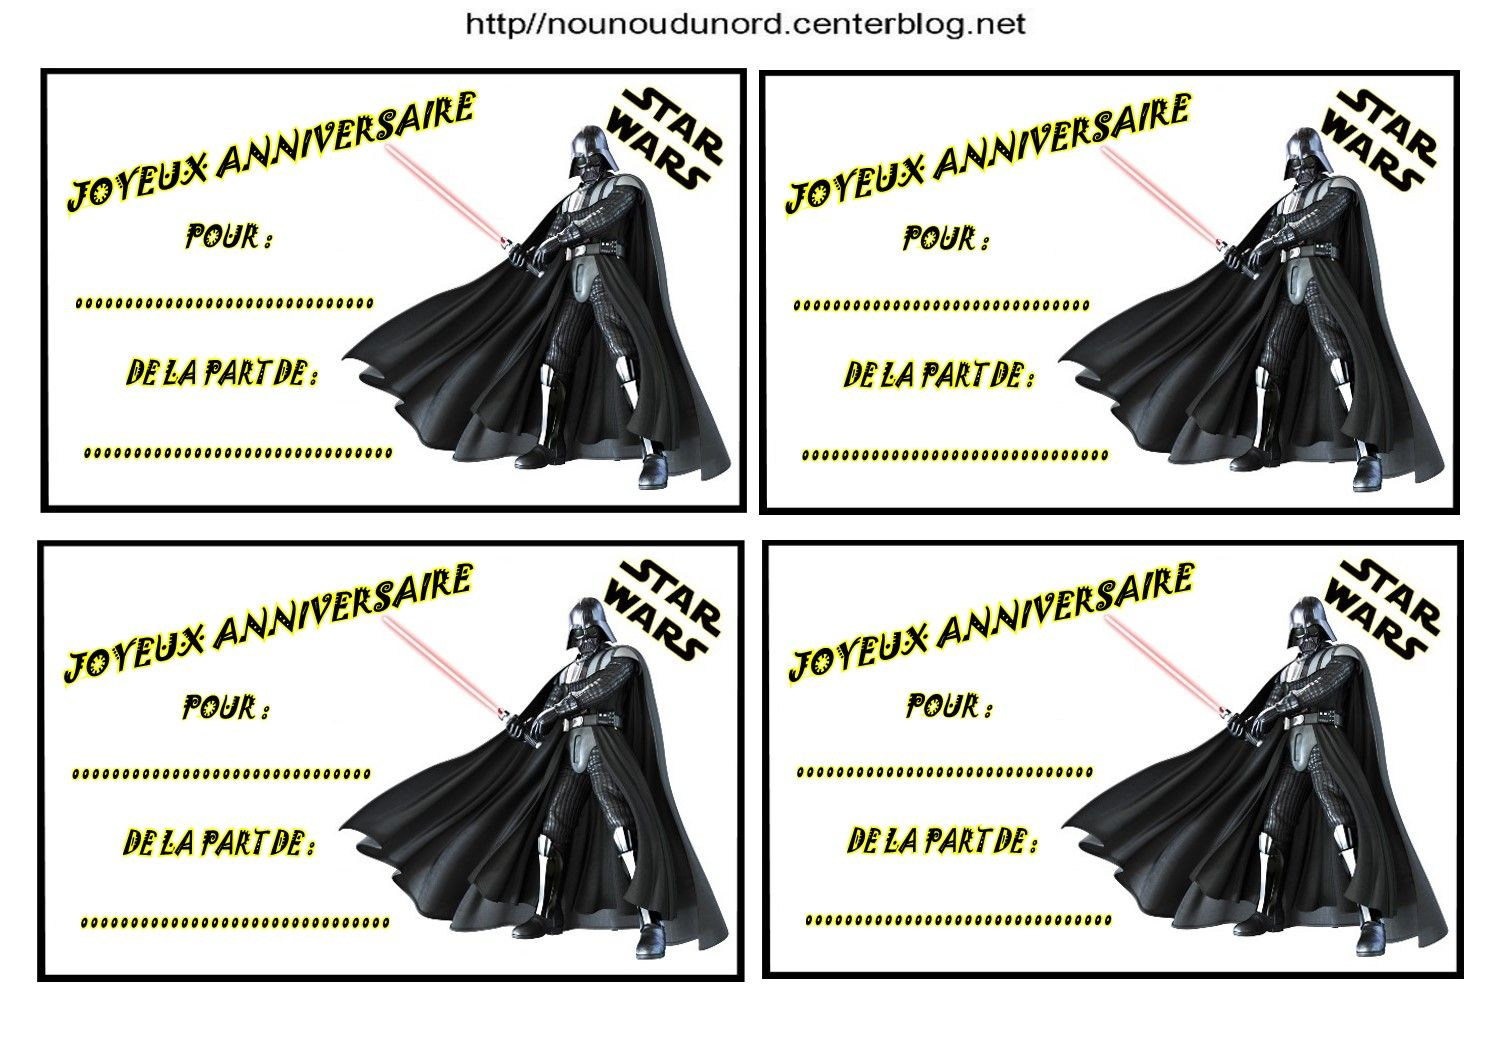 anniversaire etiquettes invitations star wars pour anniversaire. Black Bedroom Furniture Sets. Home Design Ideas